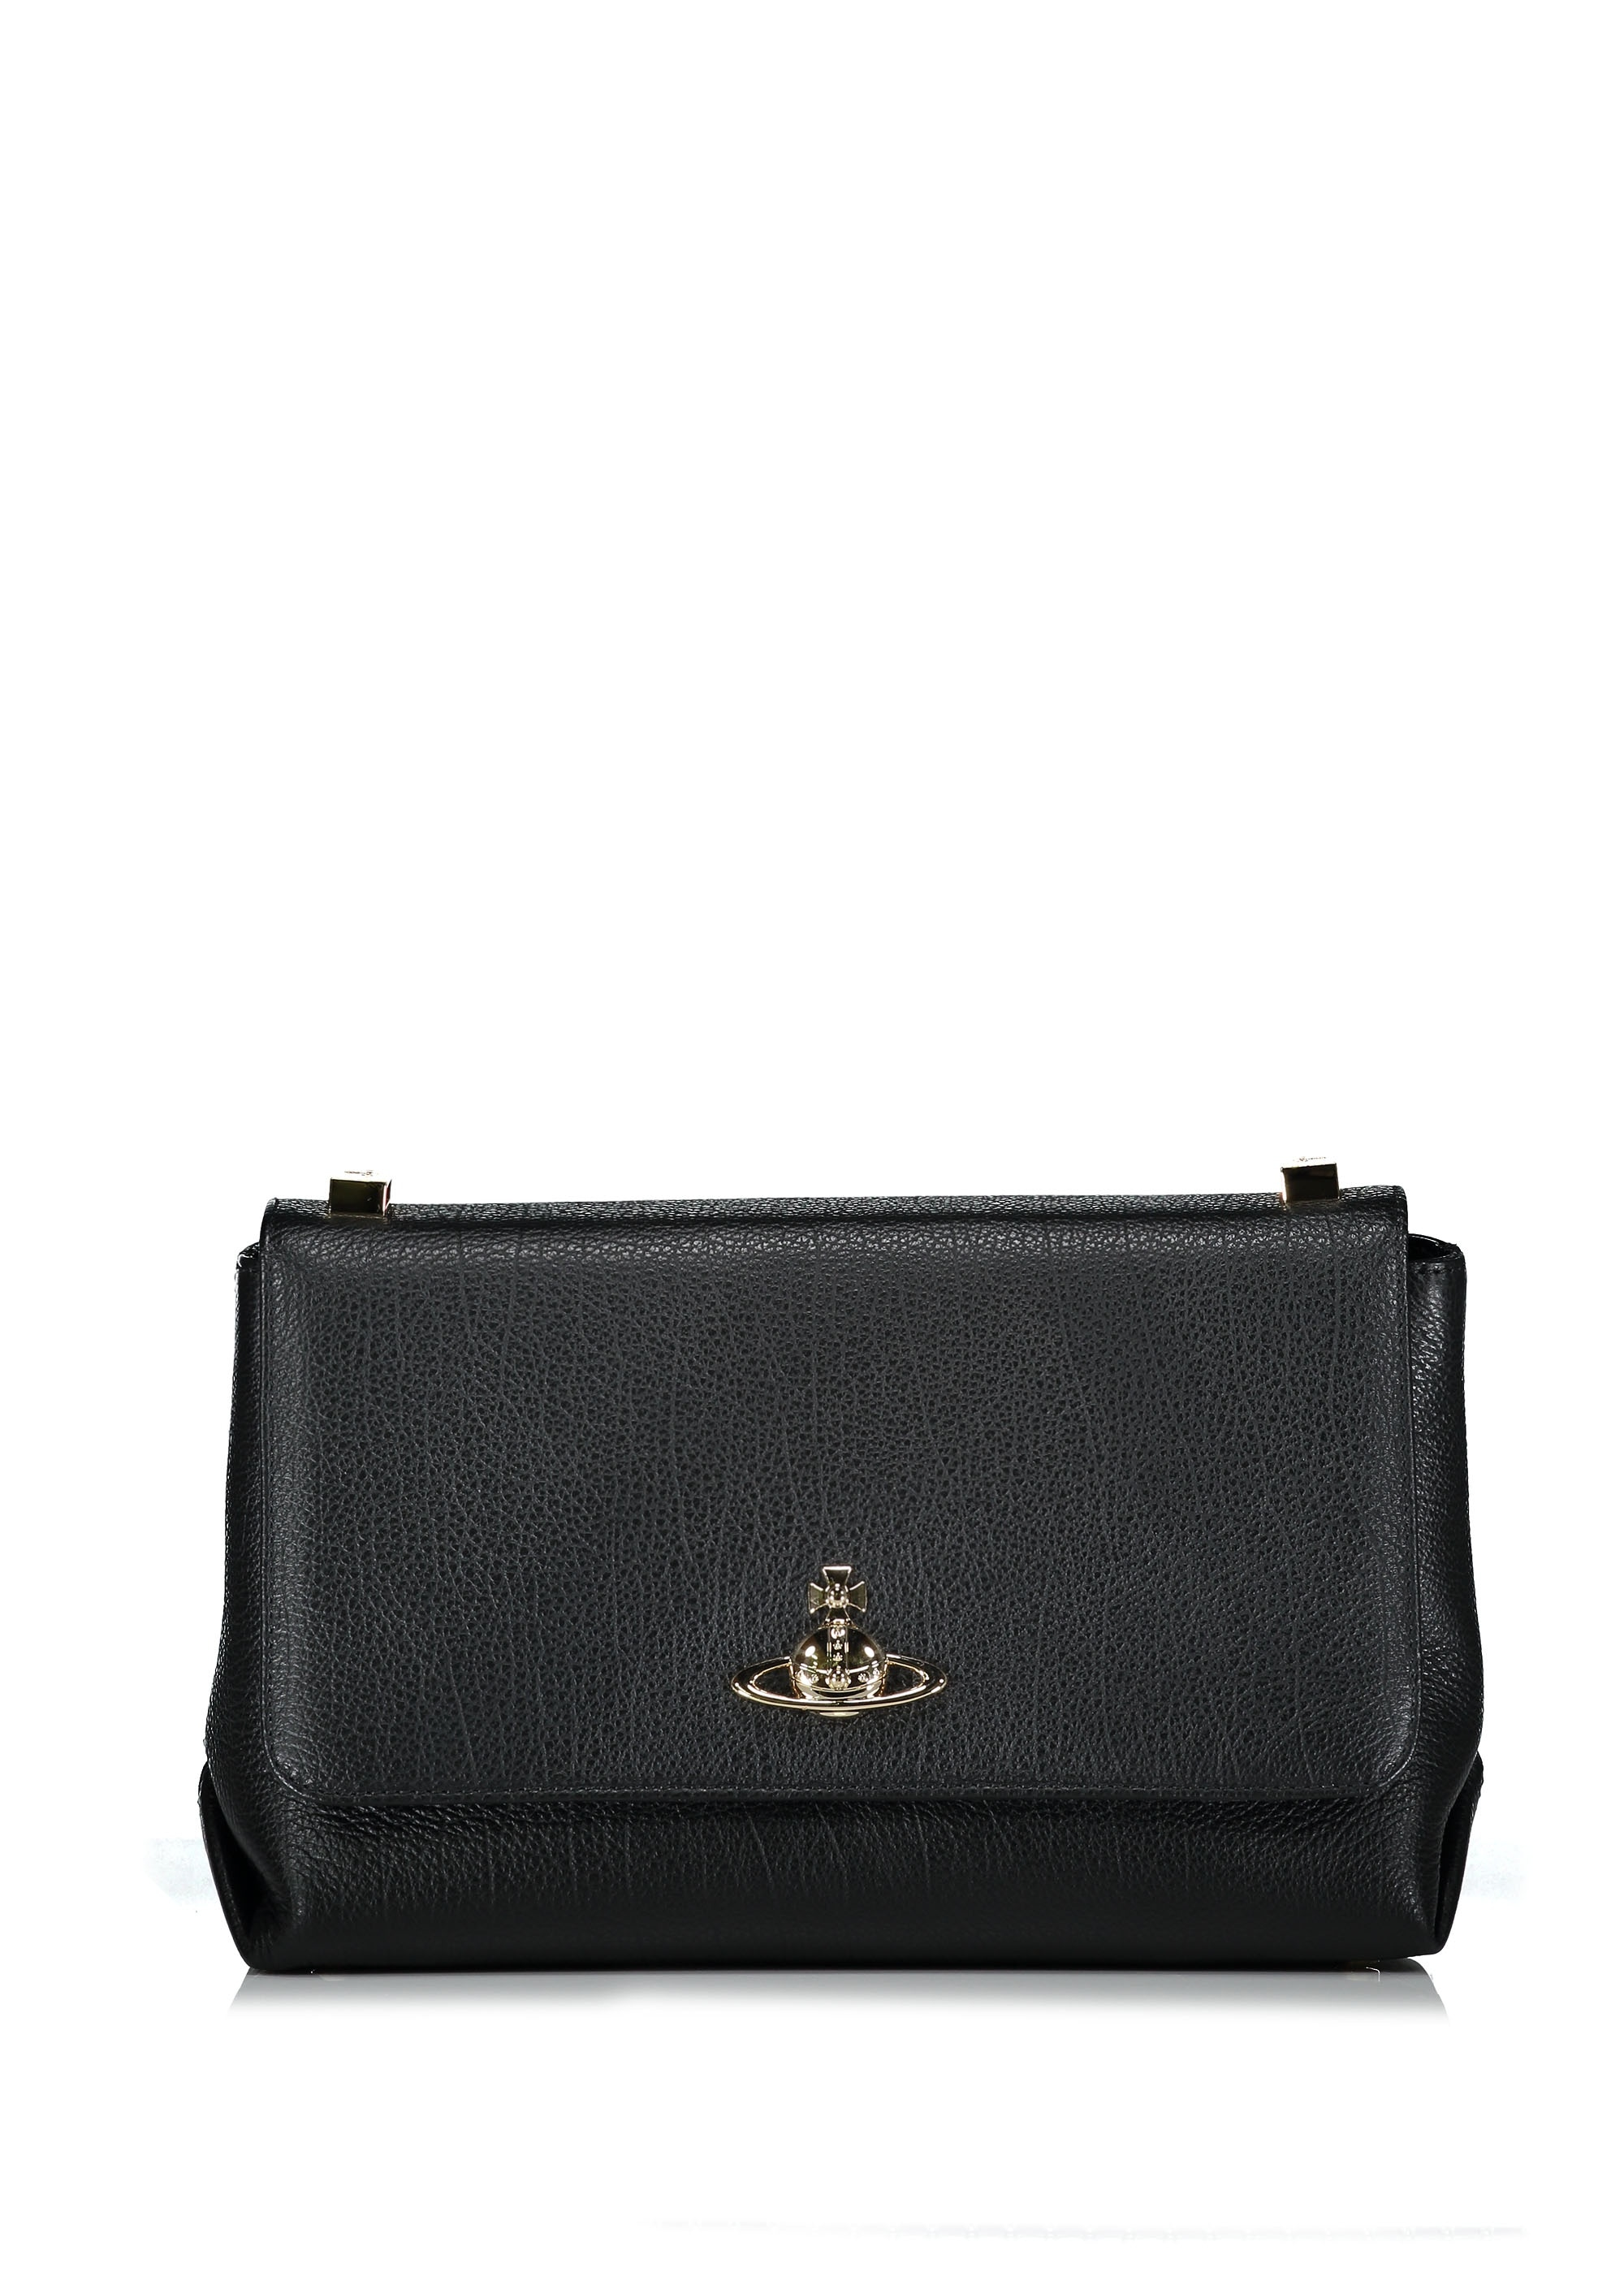 556609fe118 Vivienne Westwood Accessories Balmoral Large Bag - Black - Triads ...